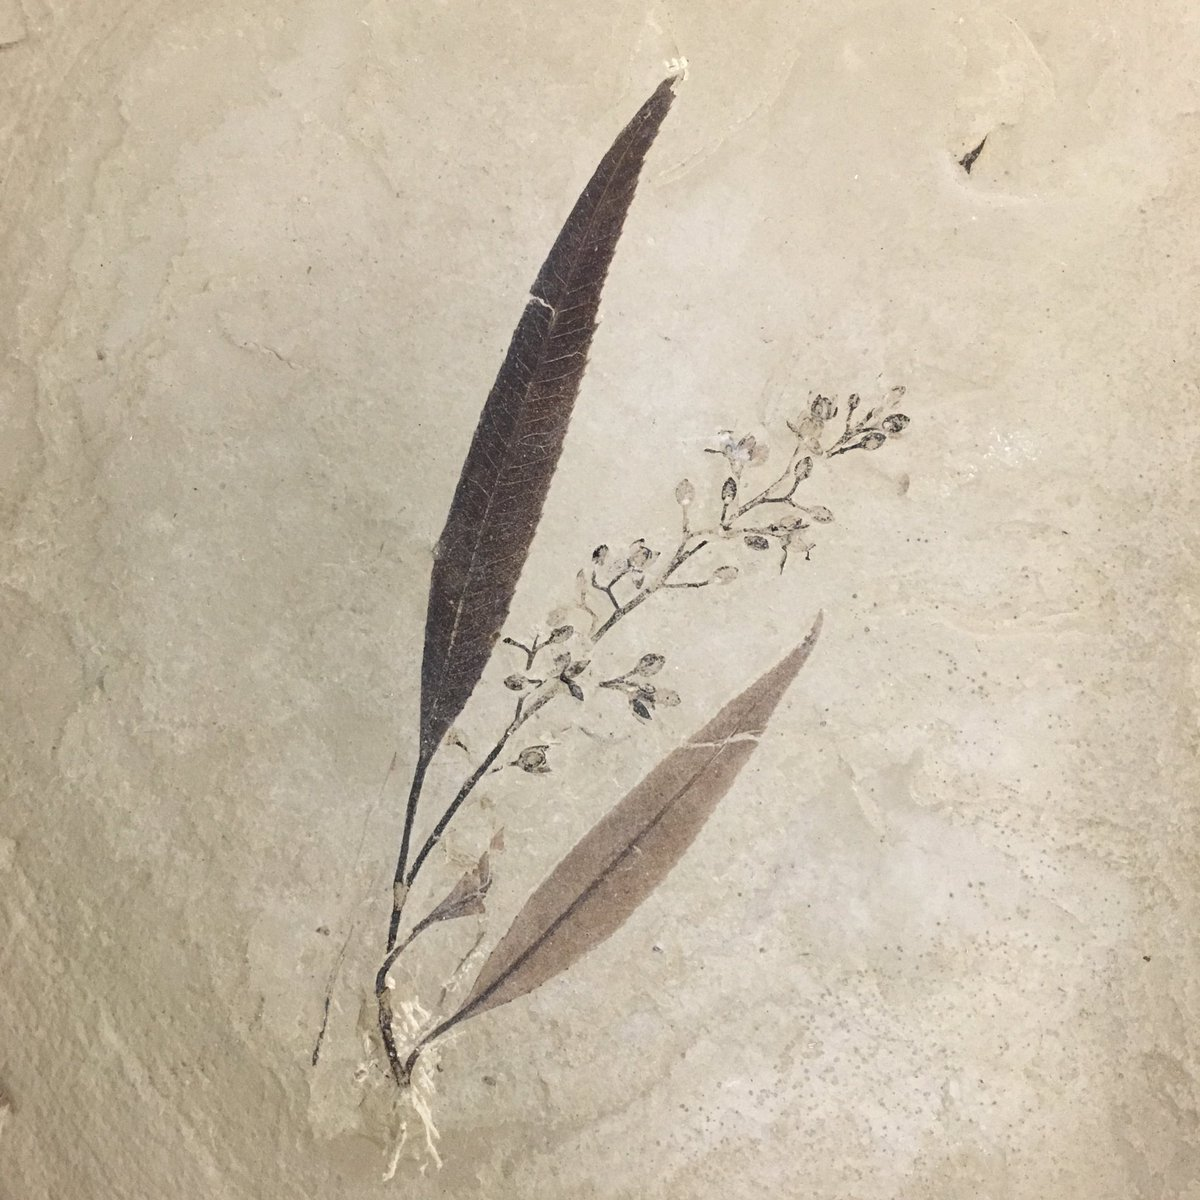 Pseudosalix handleyi, one of the most beautiful fossil plants I've ever seen. #FossilFriday https://t.co/YewmN9gATB